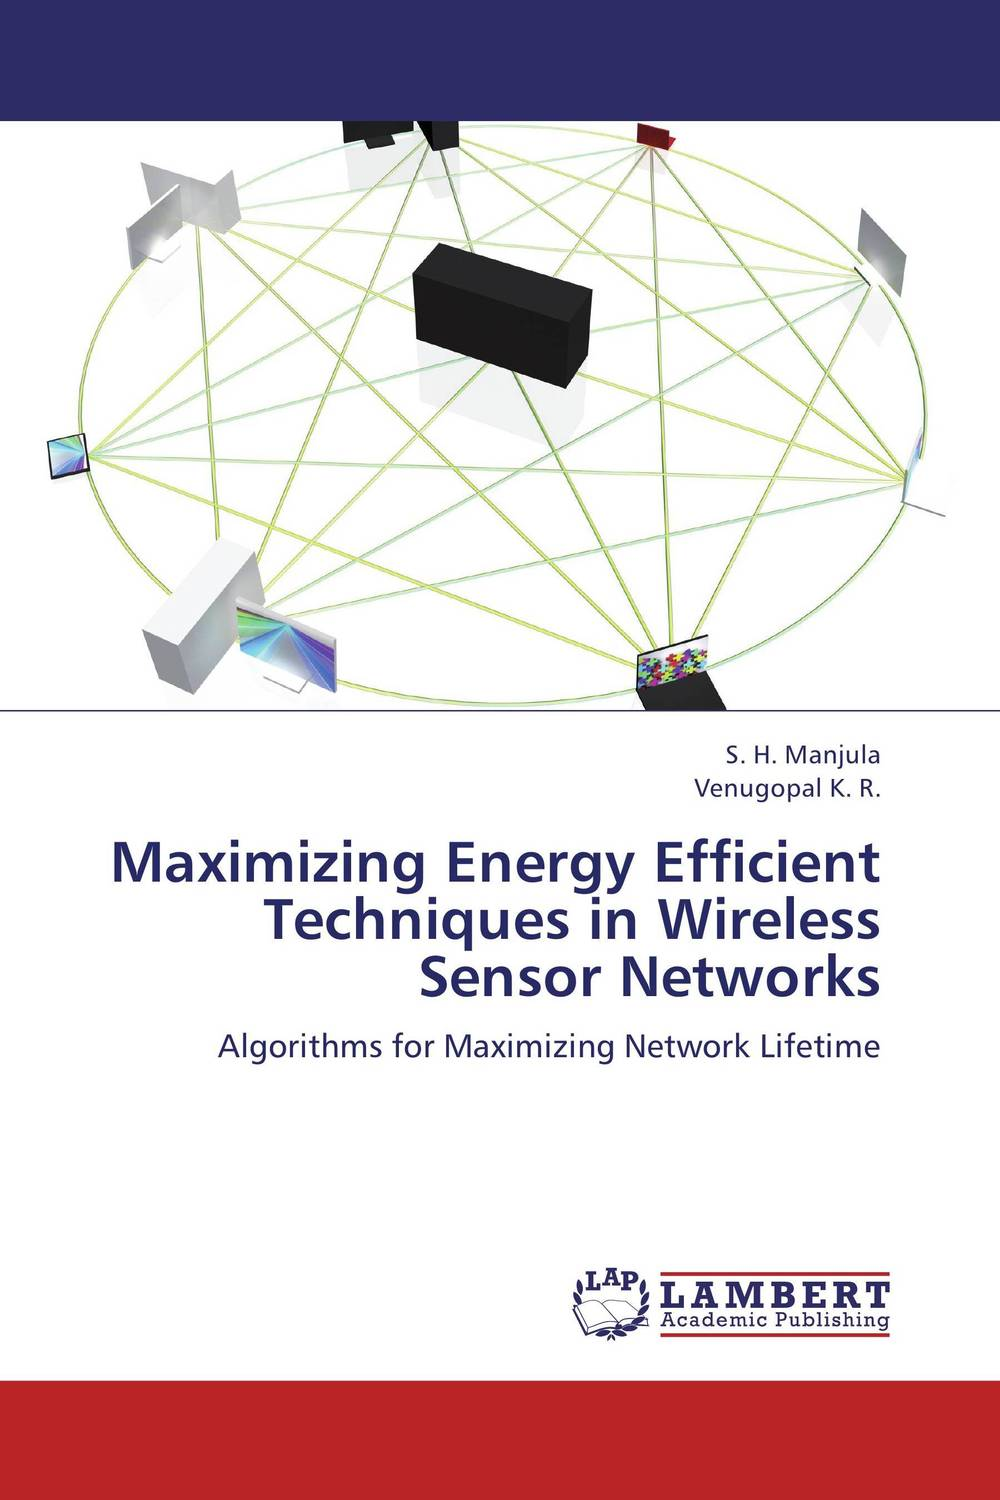 Maximizing Energy Efficient Techniques in Wireless Sensor Networks characterizing user mobility in wireless networks